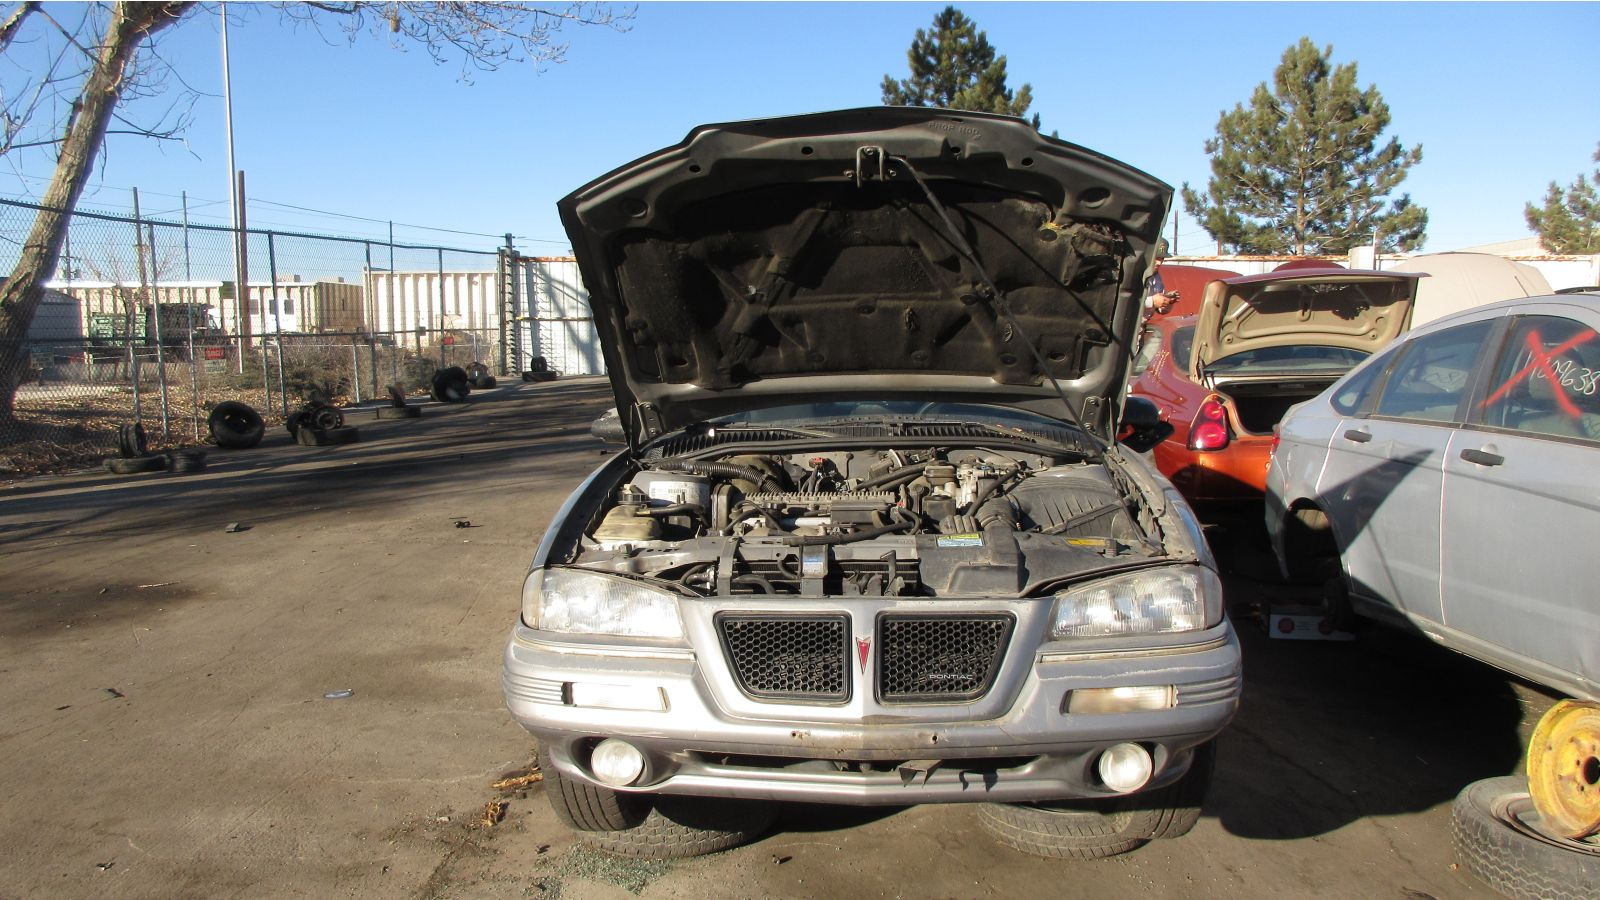 Lexus Dealership Phoenix >> Junkyard Find: 1994 Pontiac Grand Am SE Sport Coupe - The ...